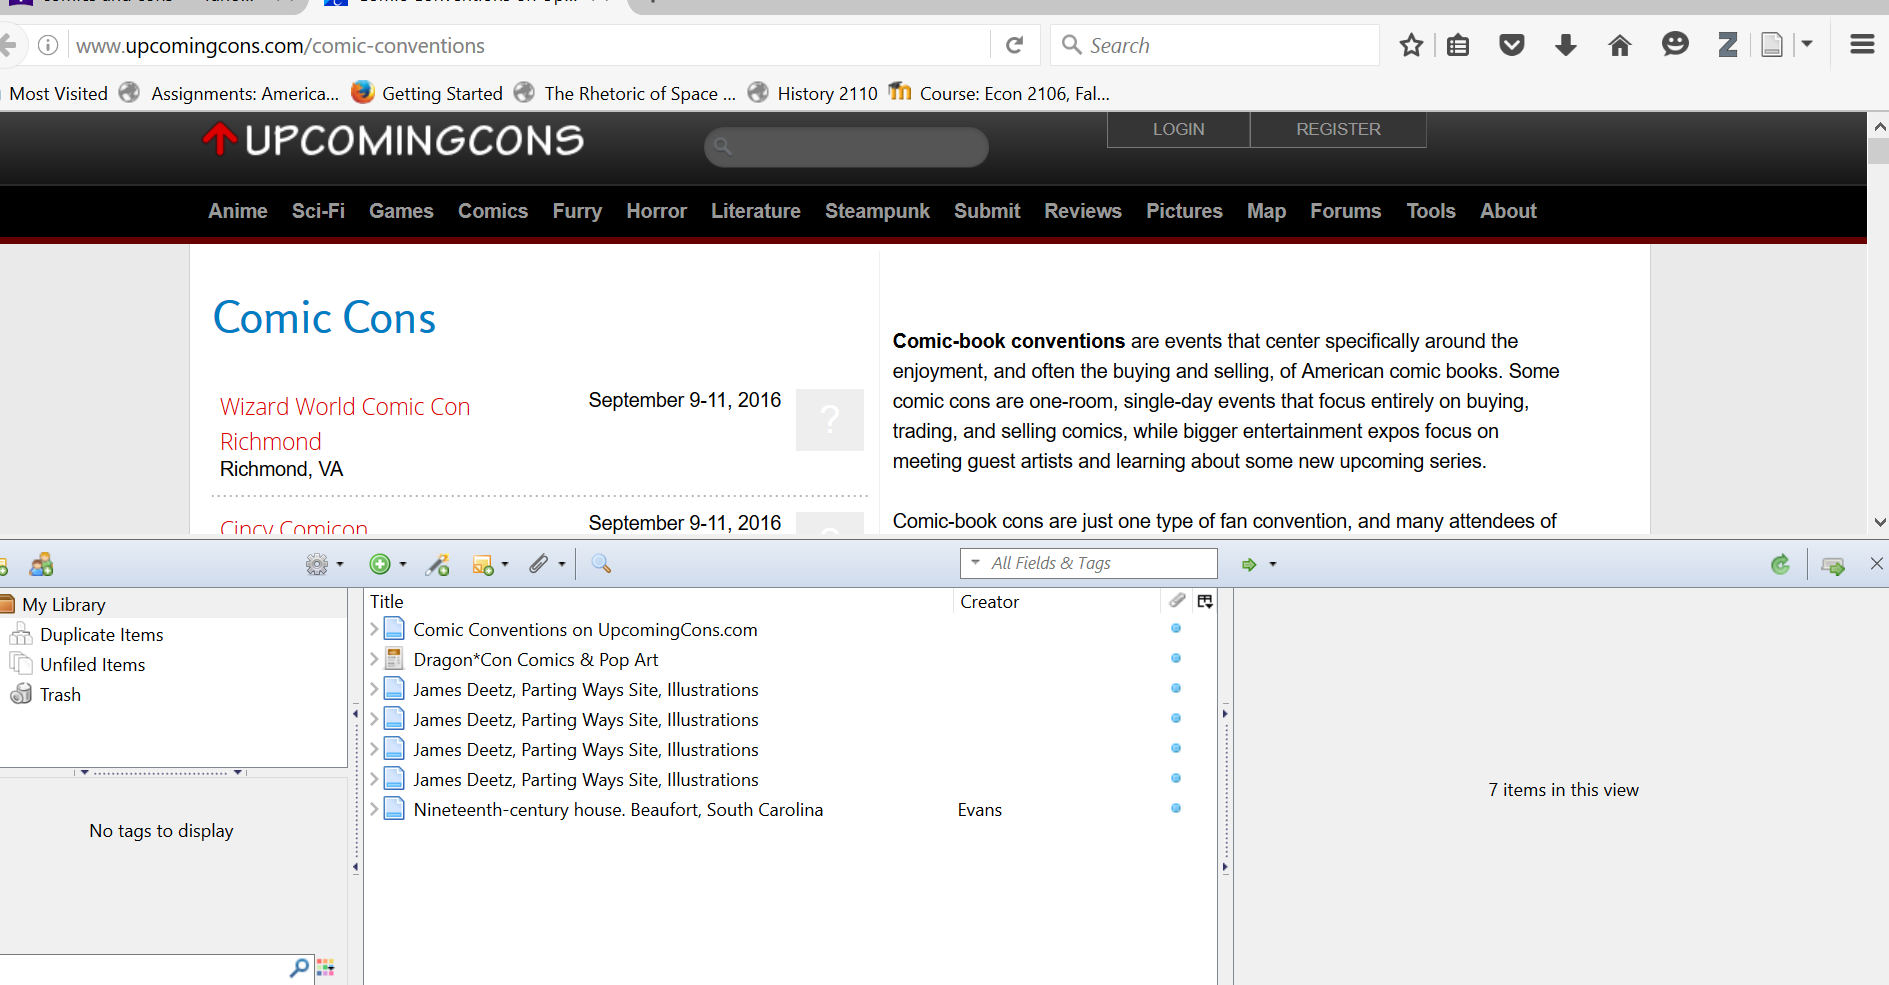 This Is A Picture Showing The Zotero Posts I Made Some Of The Posts Were  Relating